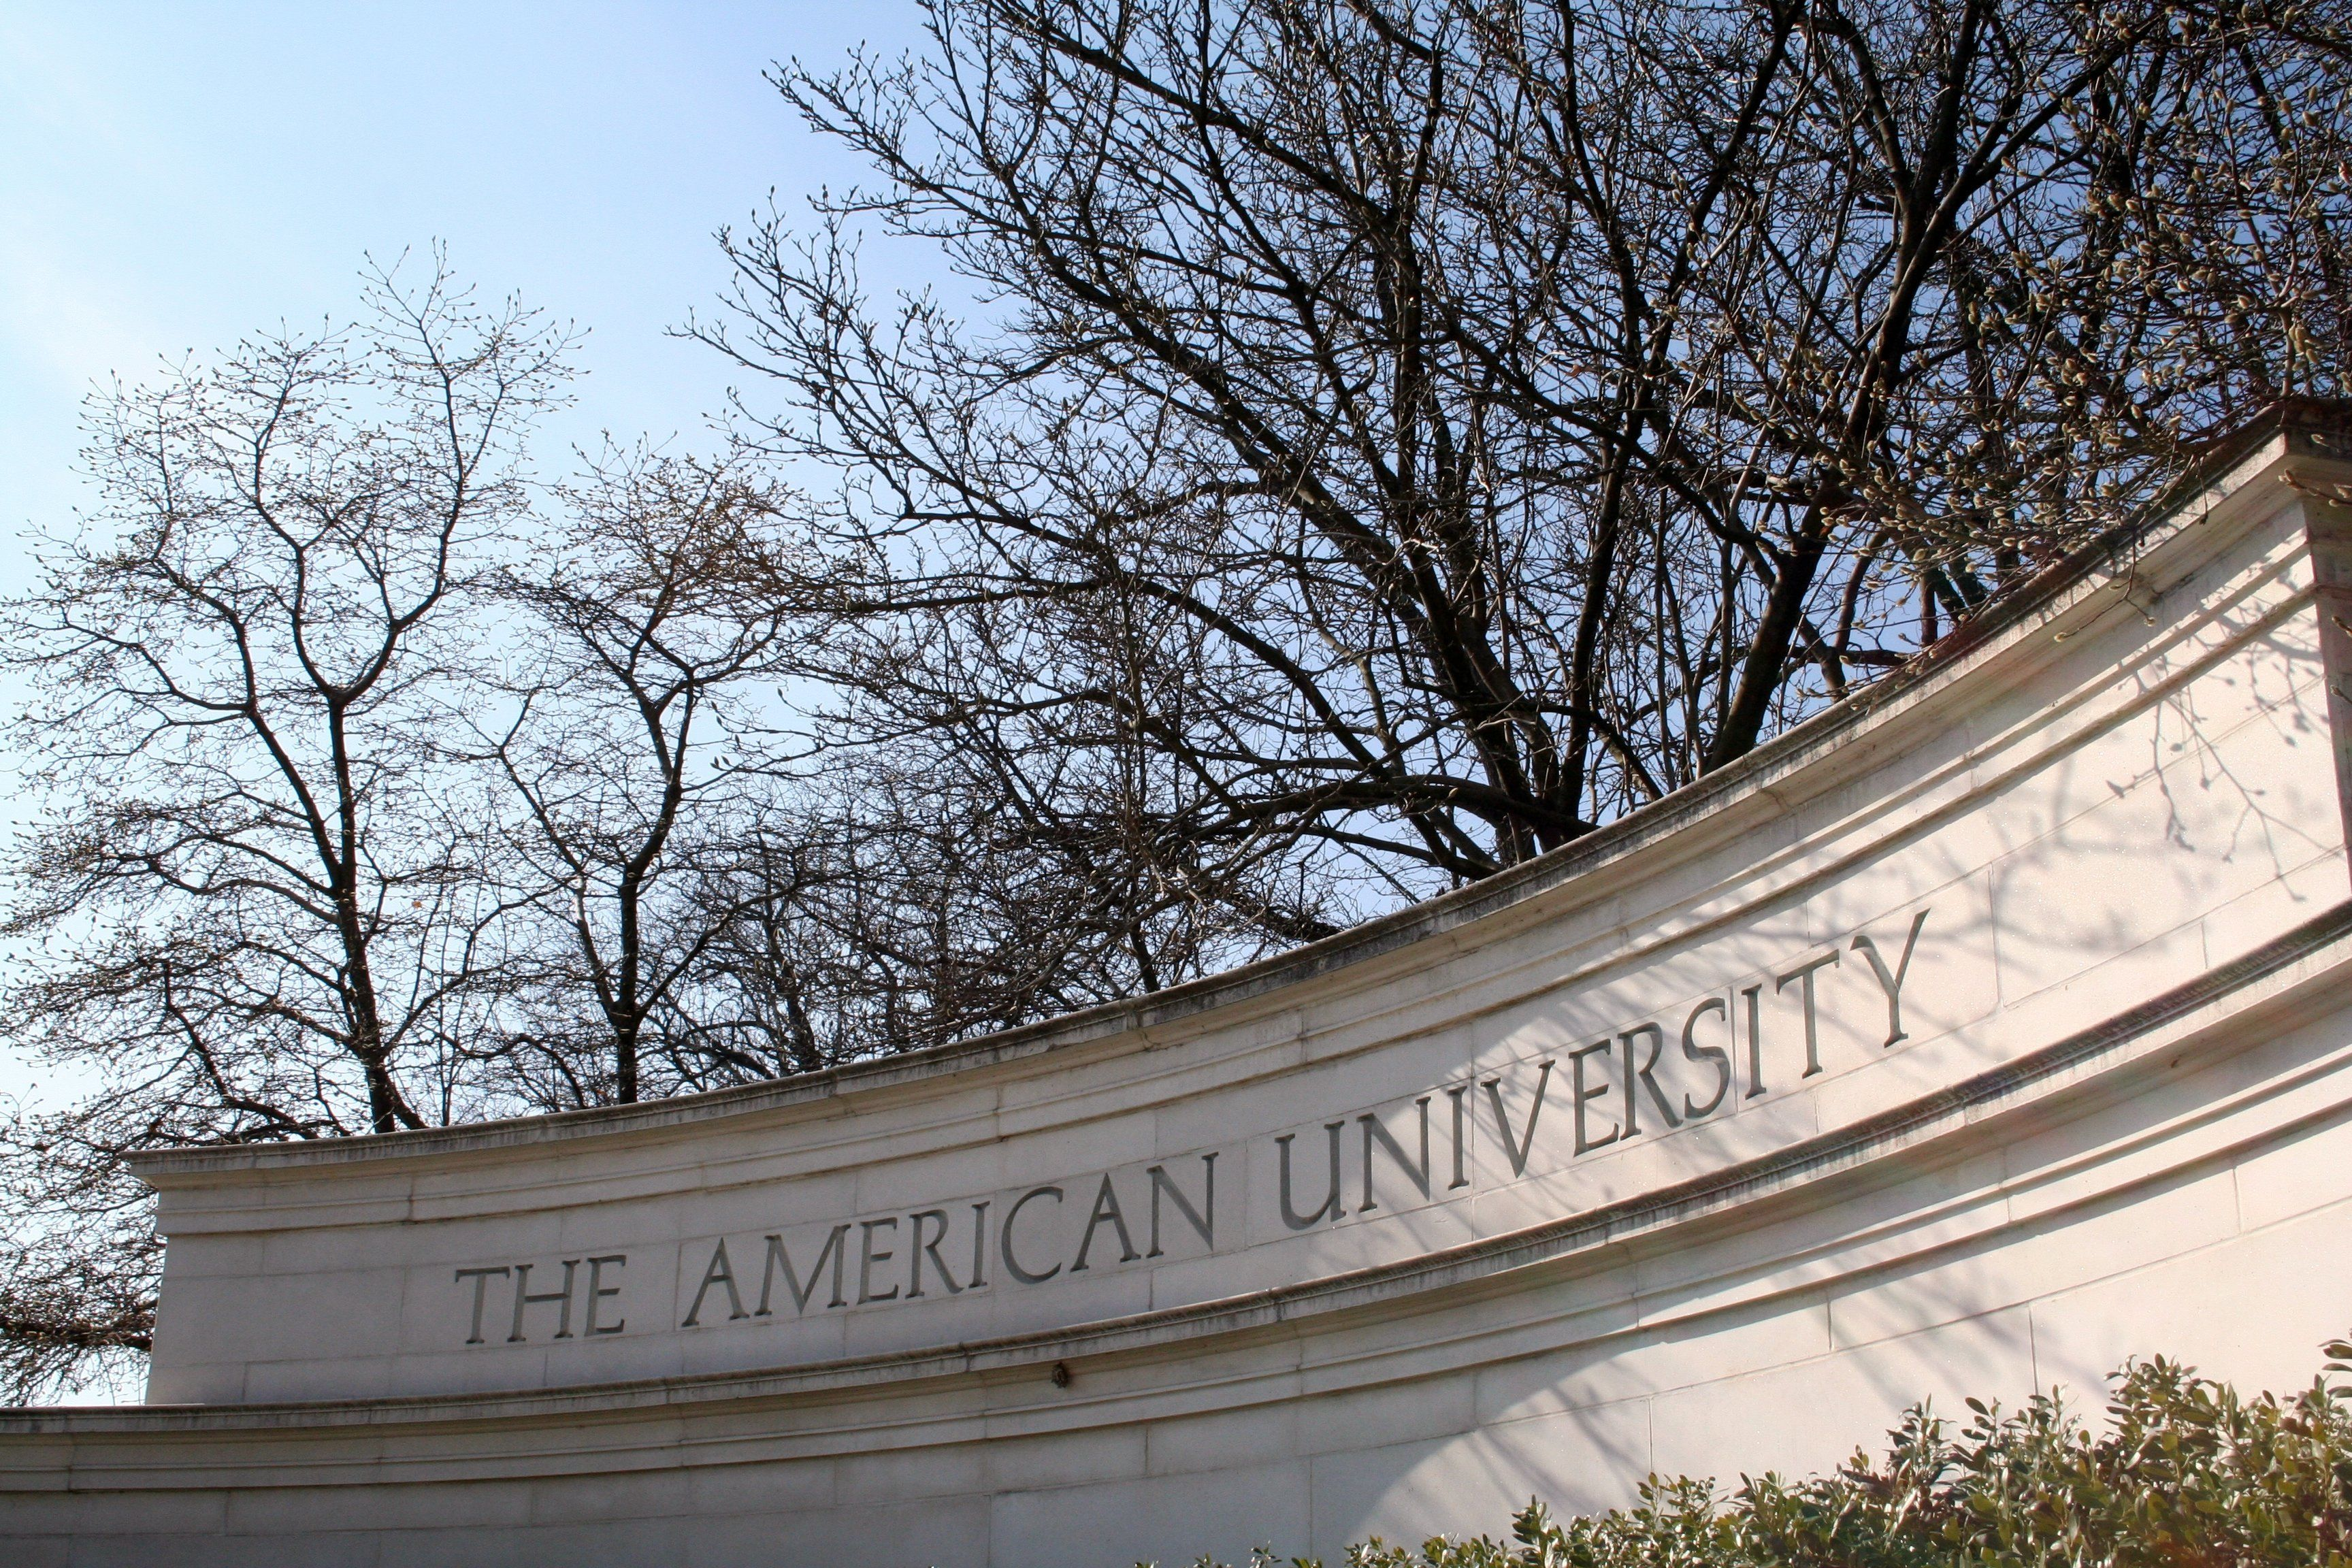 American University required a sexual assault survivor to sign a gag order on her own case.